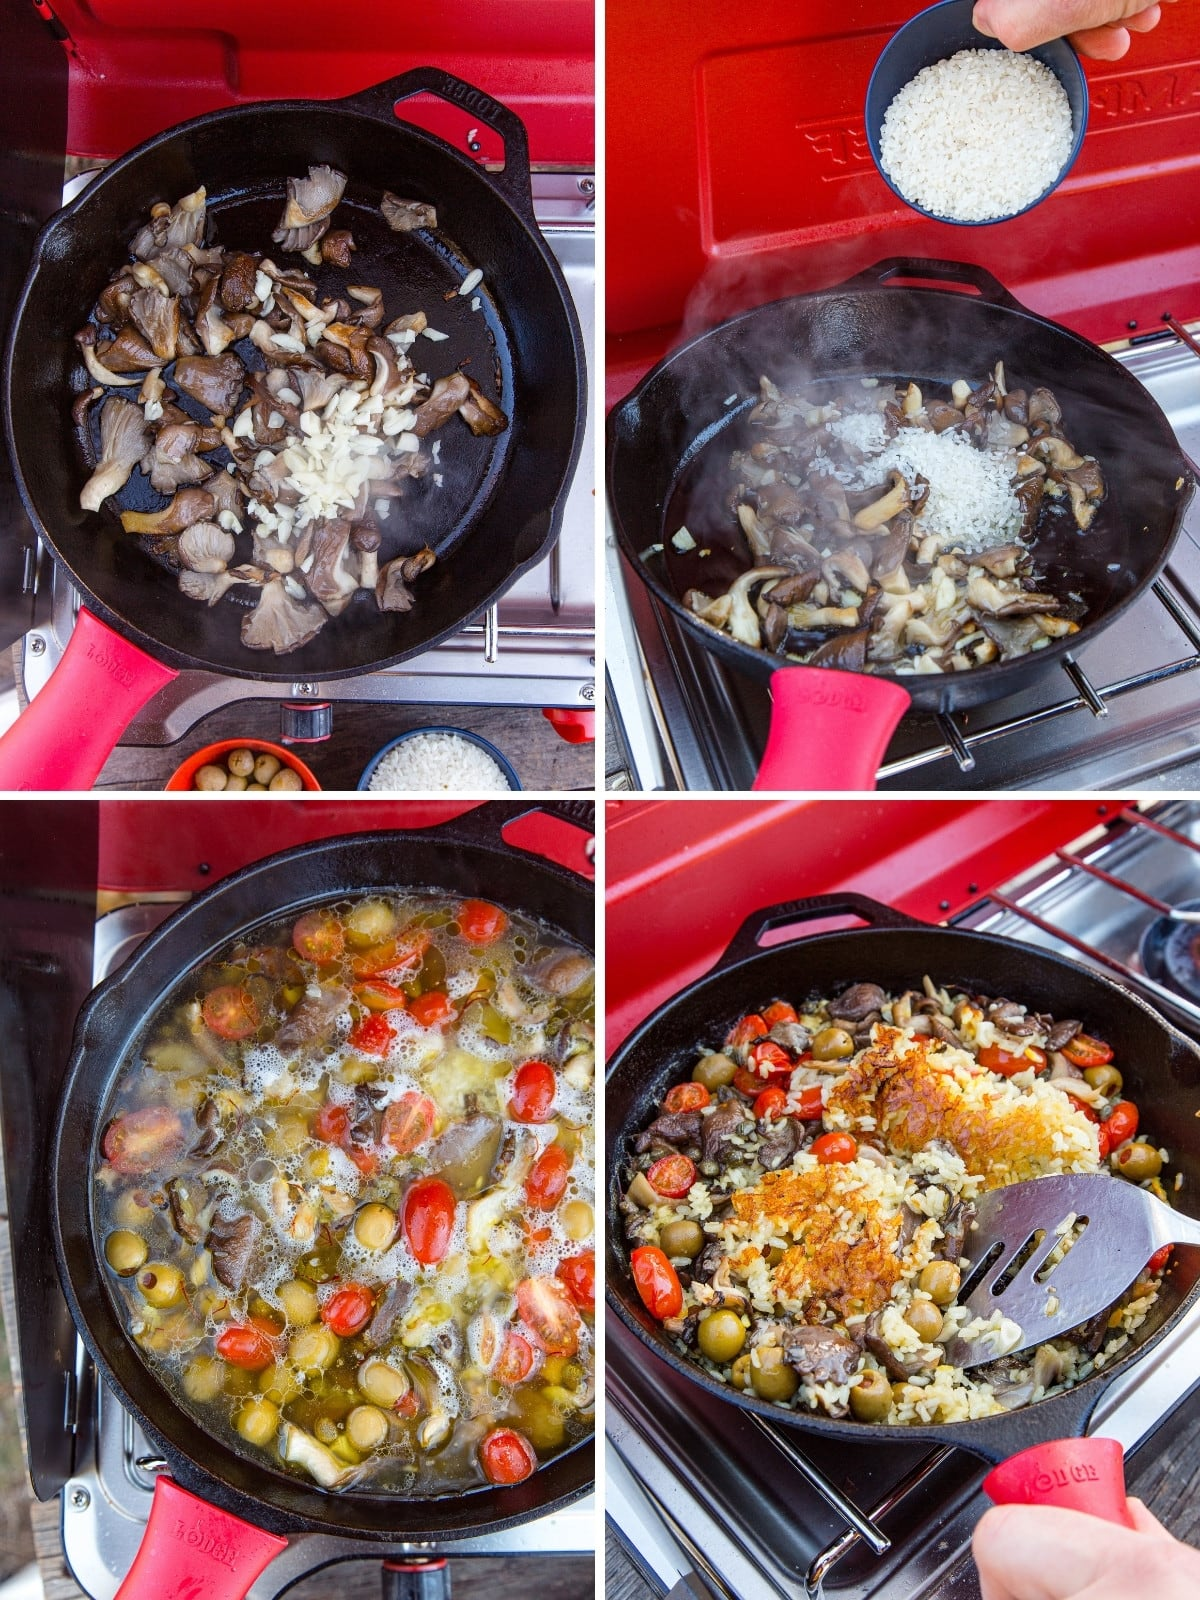 Step by step images of making vegan paella